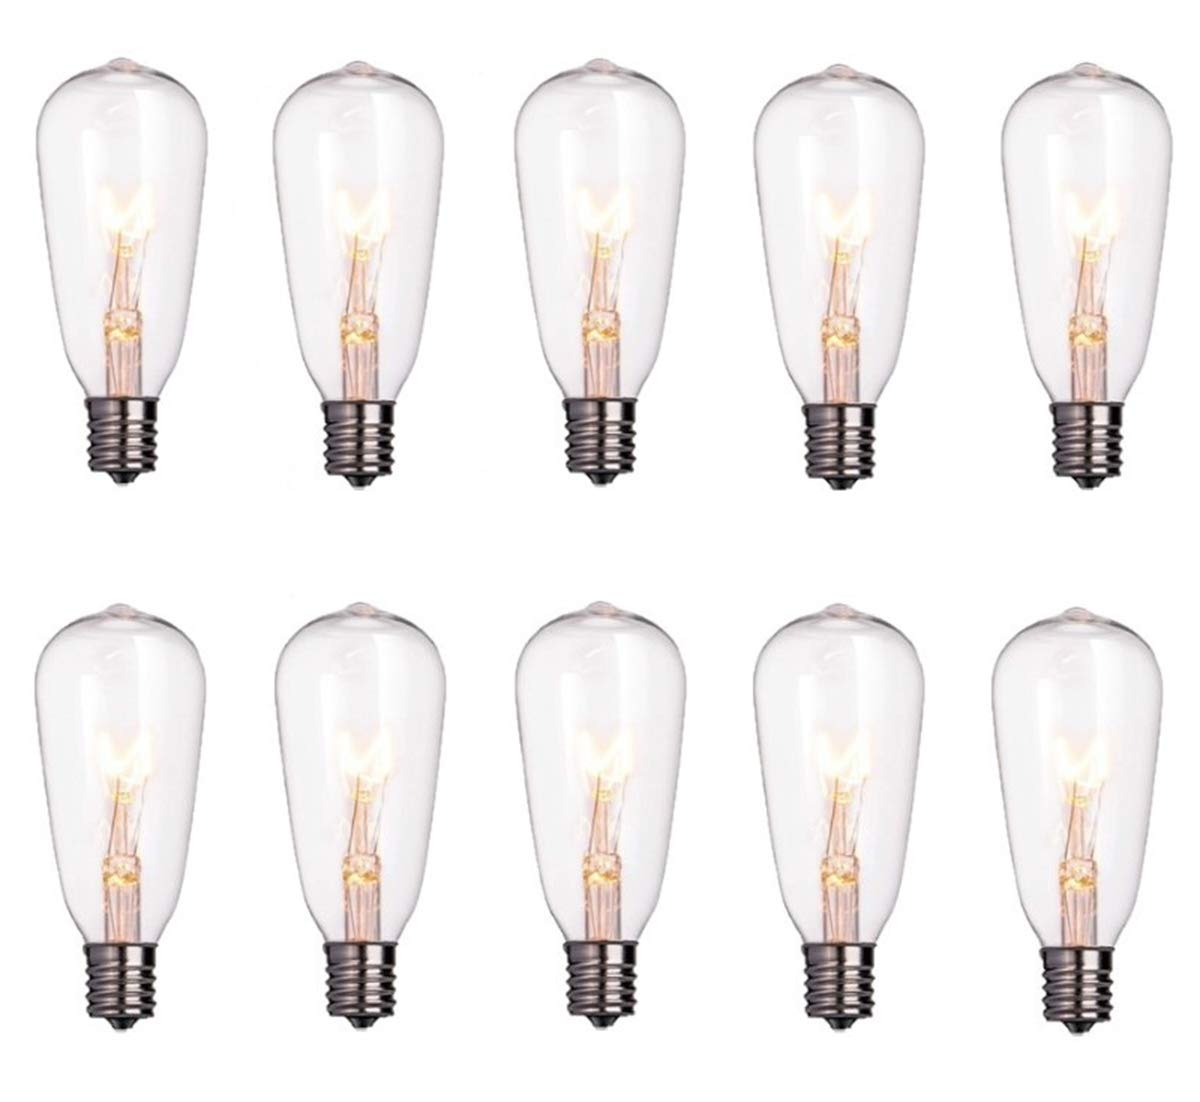 Goothy ST40 Edison Style Bulbs Replacement Screw Base Light Bulbs(Pack of 10) by Goothy